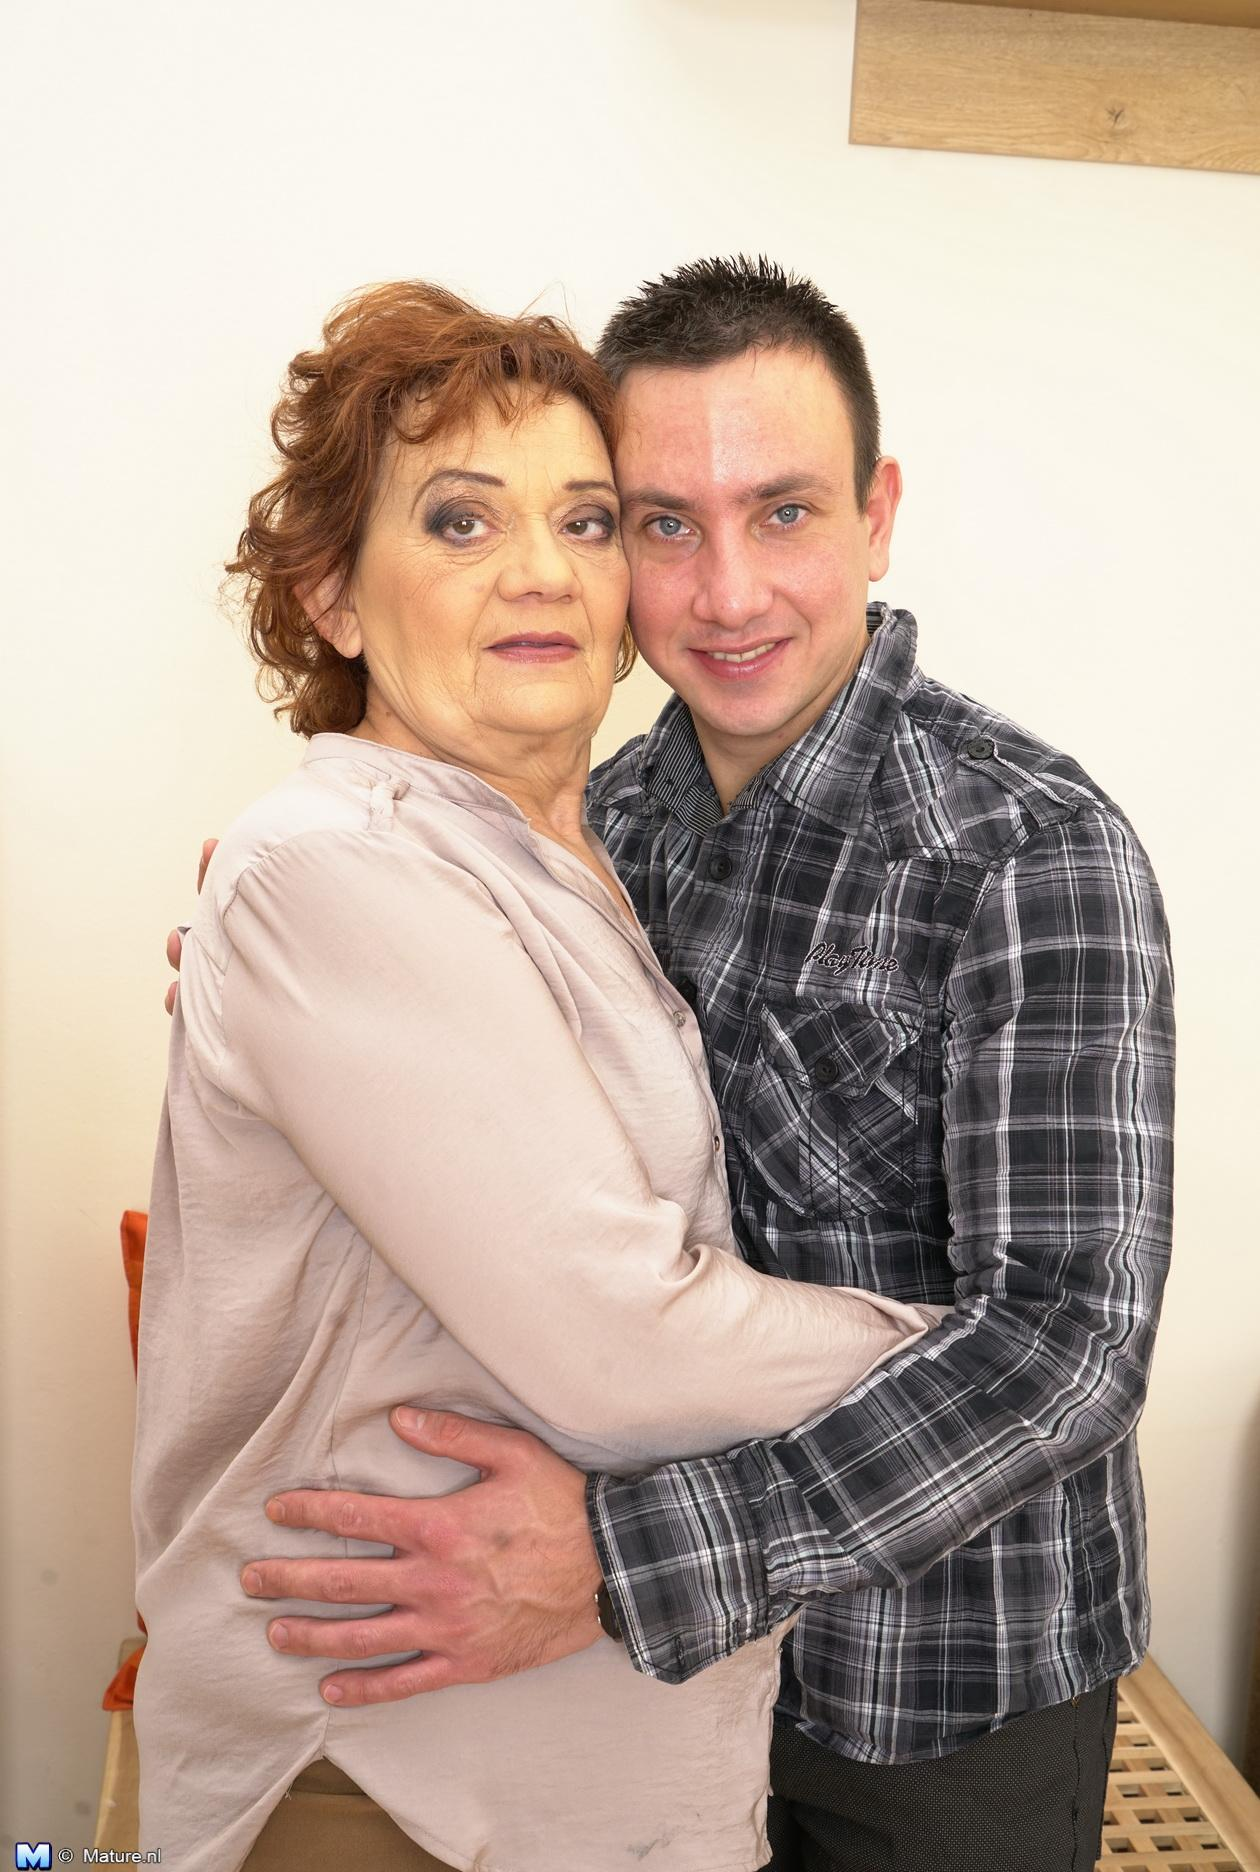 Old domineering grandmother deflowered inexperienced man and demands lots of kisses with tongue picture 2